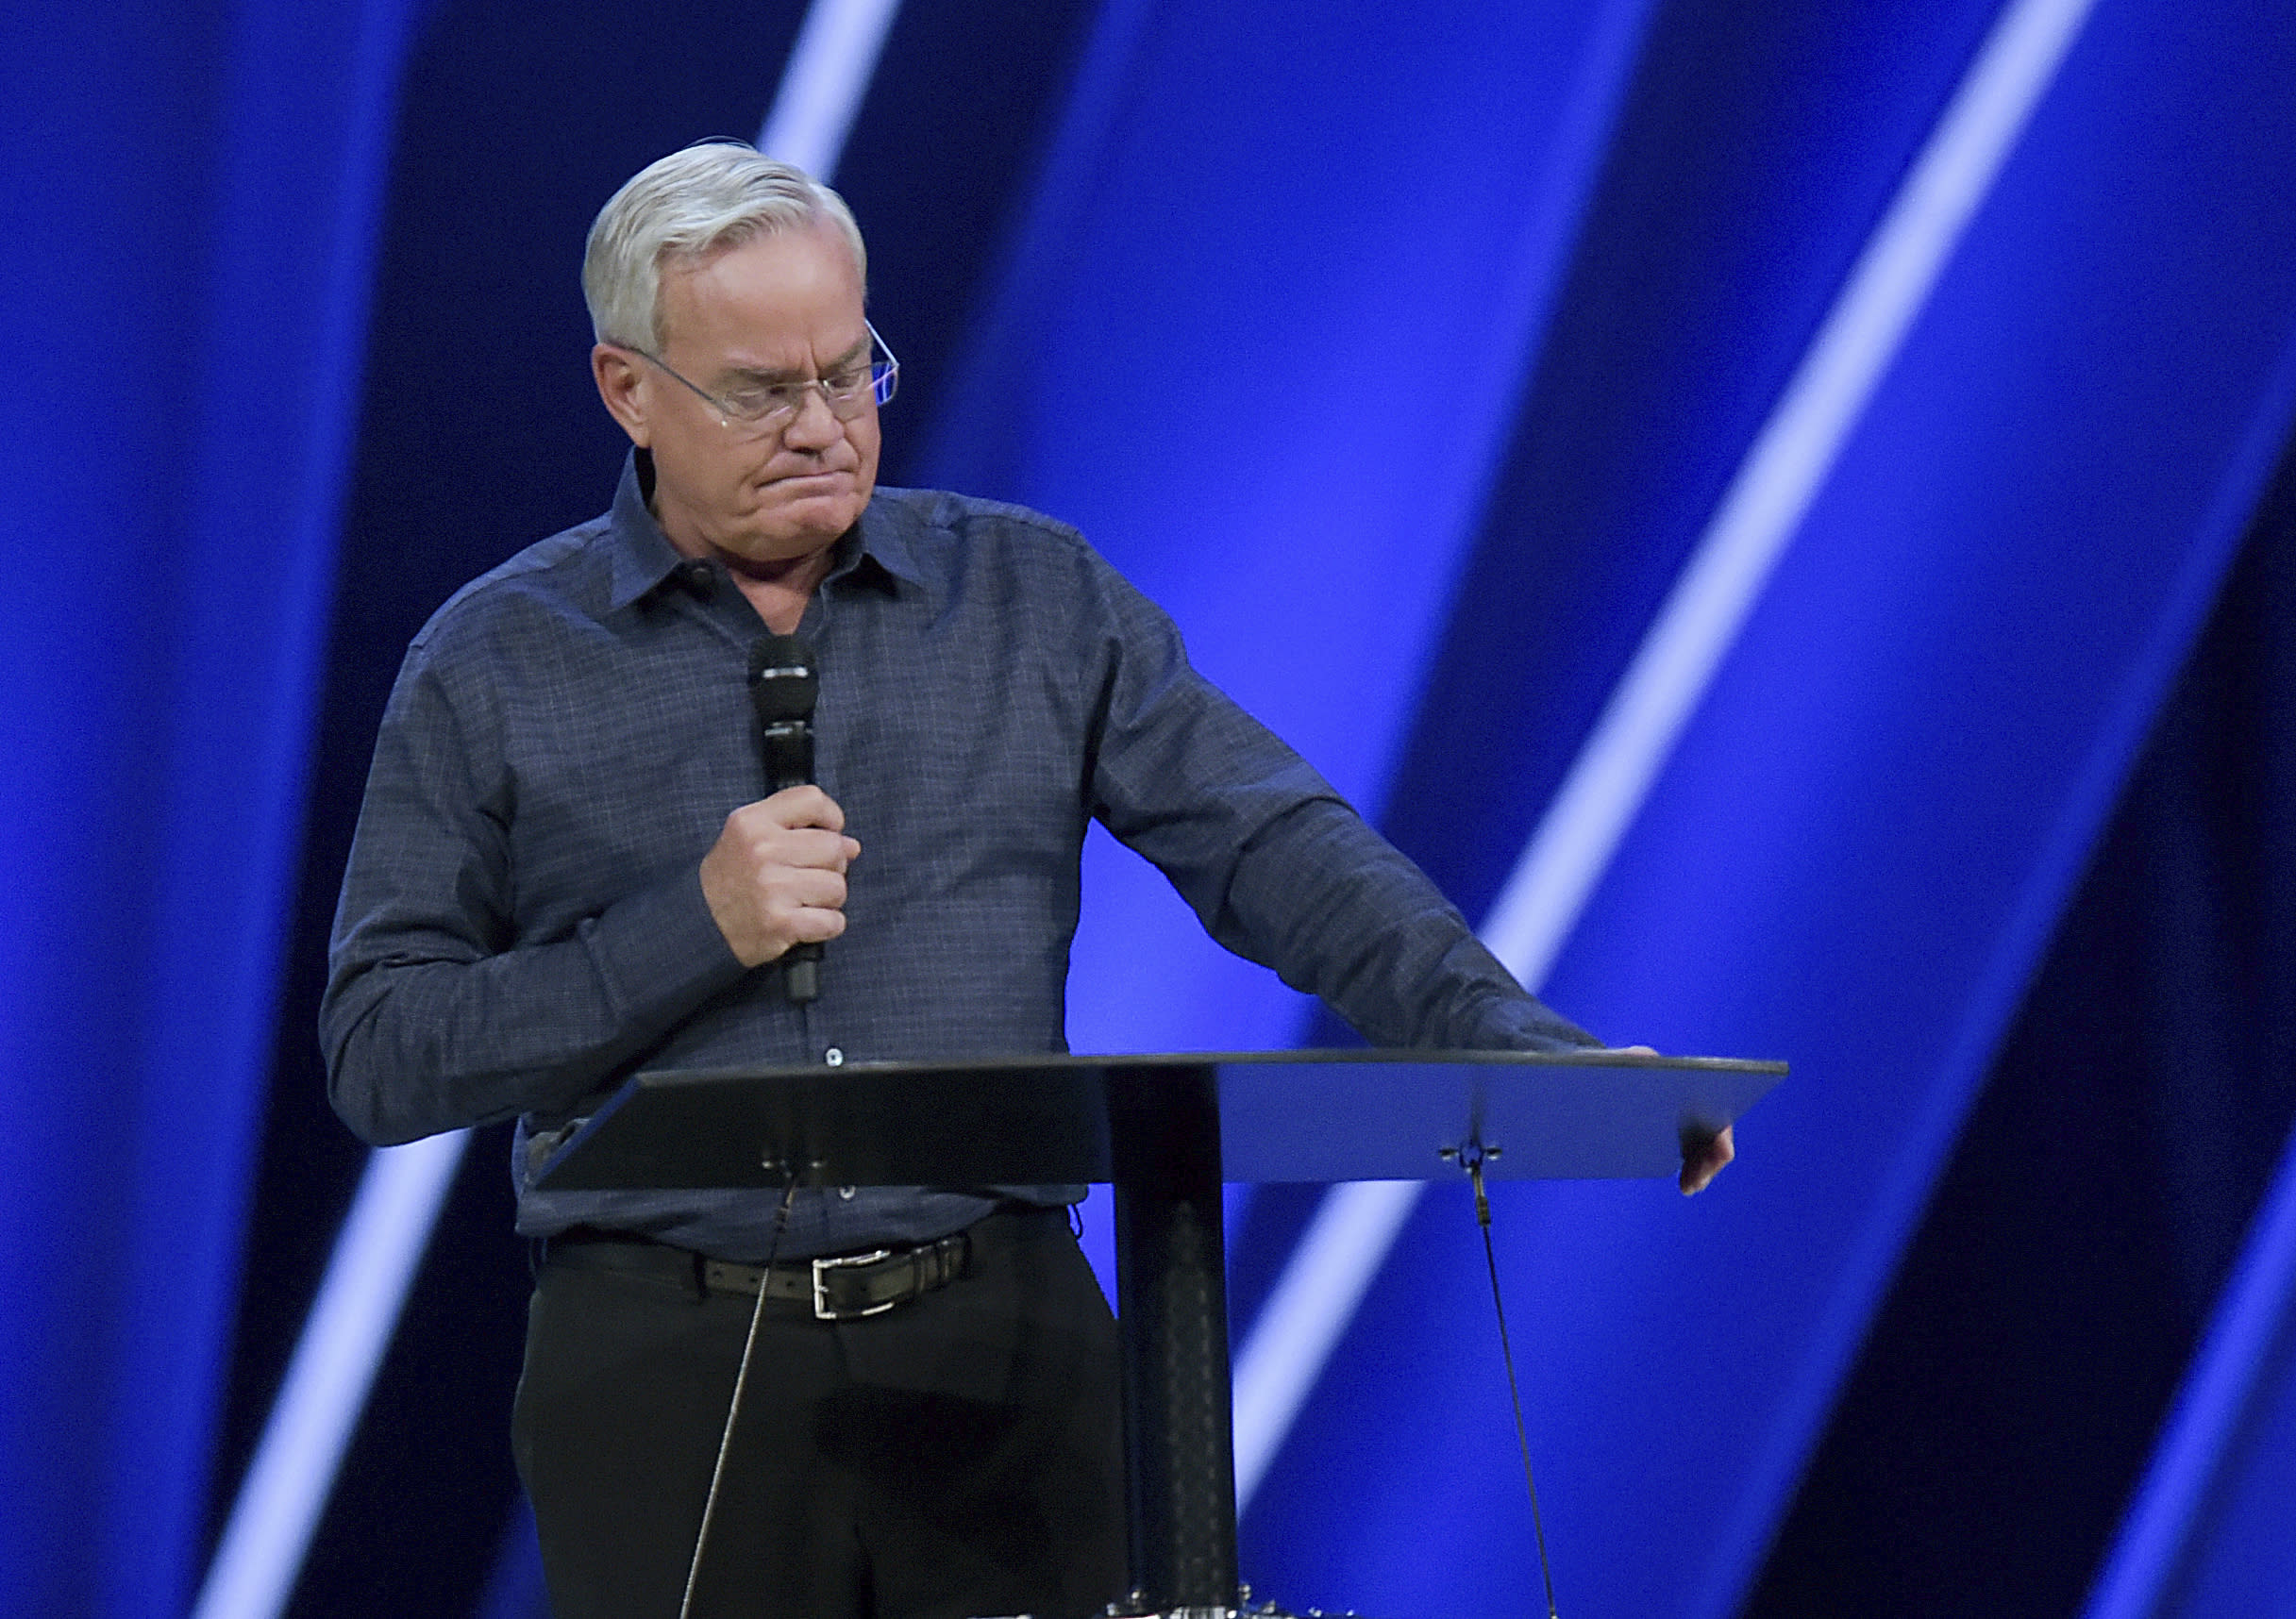 FILE - In this Tuesday, April 10, 2018 file photo, Willow Creek Community Church Senior Pastor Bill Hybels stands before his congregation in South Barrington, Ill., where he announced his early retirement effective immediately, amid a cloud of misconduct allegations involving women in his congregation. The announcement was made during a special meeting at the church, one of the nation's largest evangelical churches, which he founded. (Mark Black/Daily Herald via AP)